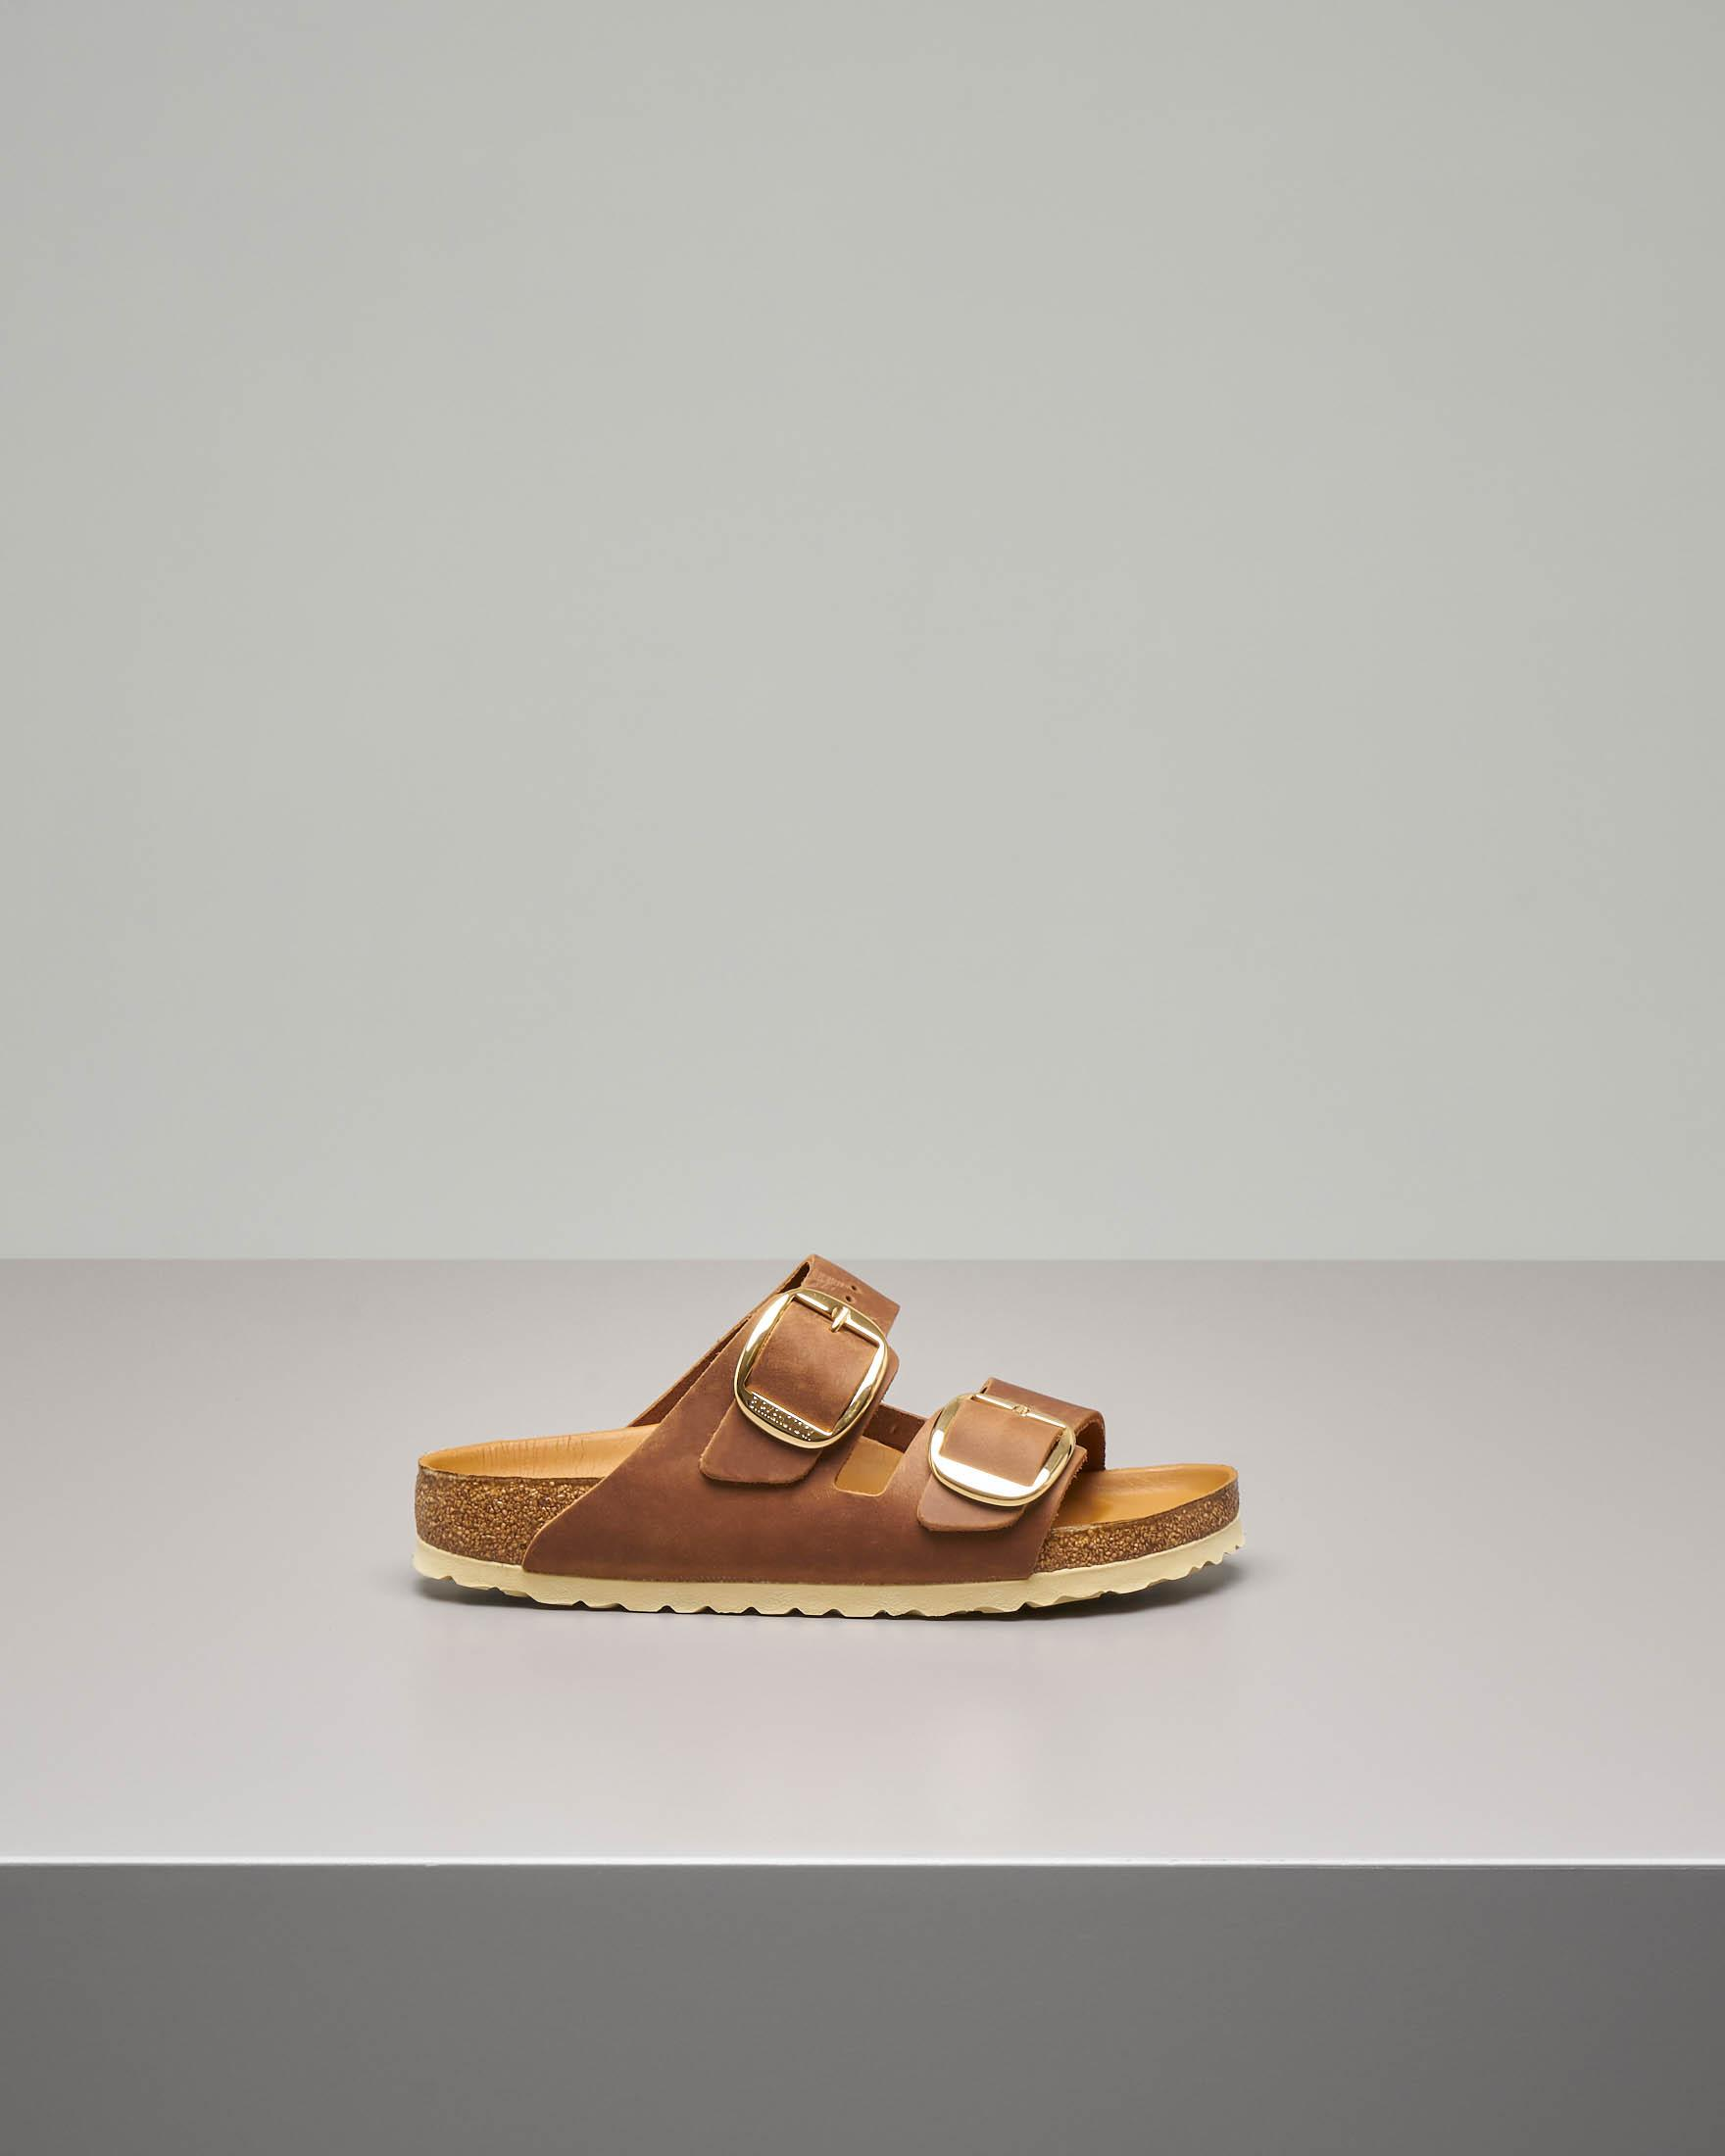 Sandalo Arizona Big buckle in pelle color cognac con doppia fascetta